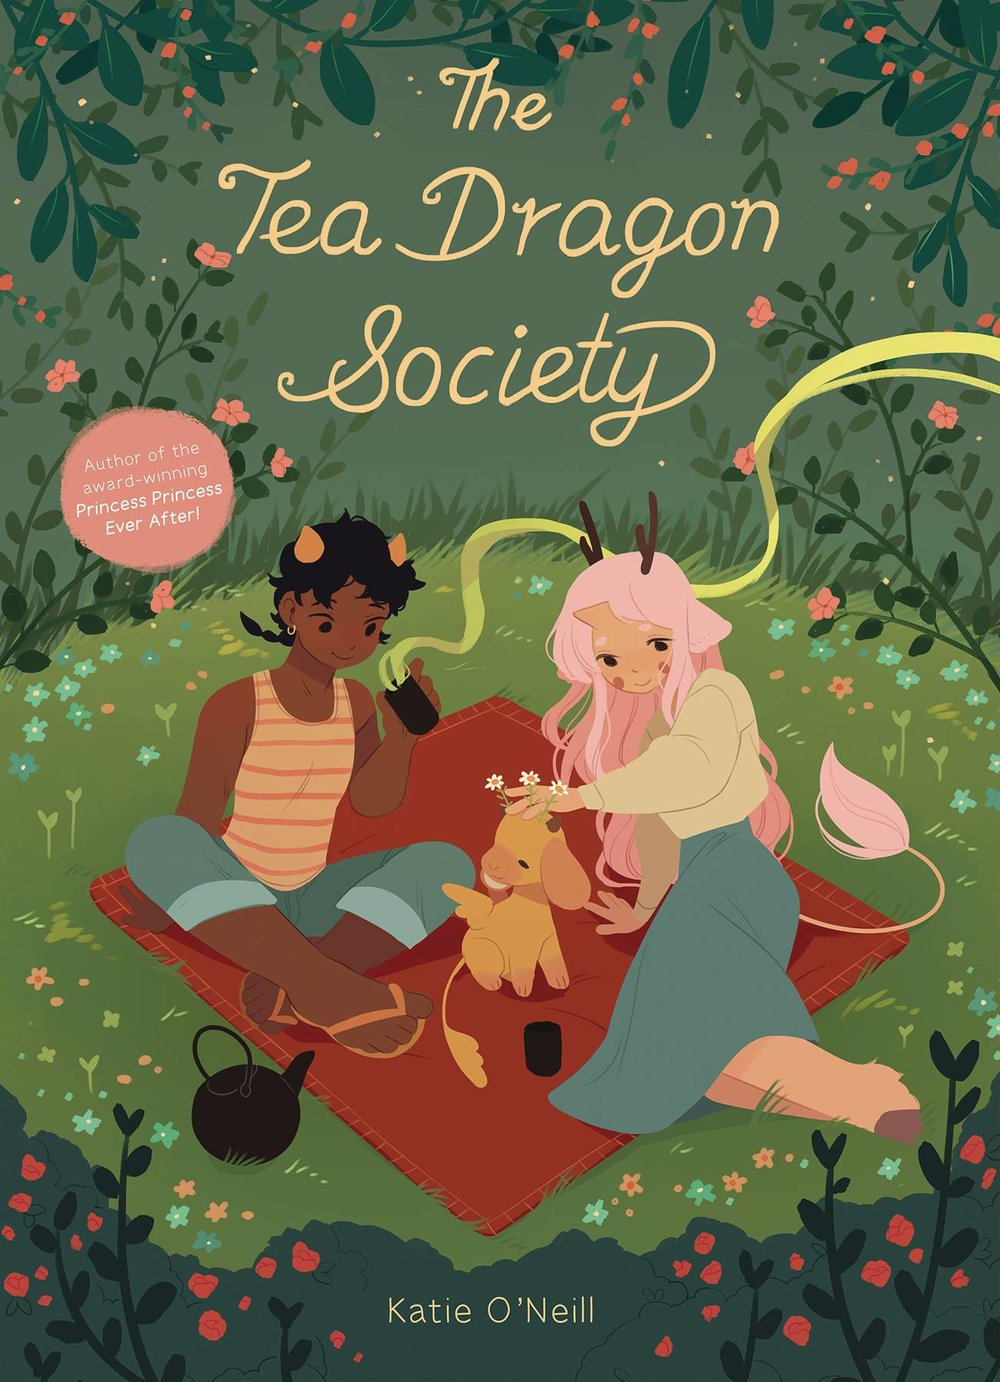 The Tea Dragon Society HC - Sarah's PickGreta, the young daughter of a blacksmith, is contemplating whether or not she wishes to continue in her mother's profession when she randomly stumbles upon a small, adorable, lost Tea Dragon in need of assistance. As thanks for returning his companion, an older man named Hesekiel offers to teach Greta the art of caring for these tiny creatures.Creator Katie O'Neill (Princess Princess Ever After) returns with her beautiful colors and character designs to tell this story of new friends, relationships, and the ability to keep memories alive through traditional crafts passed down through the generations. Perfect for all ages!